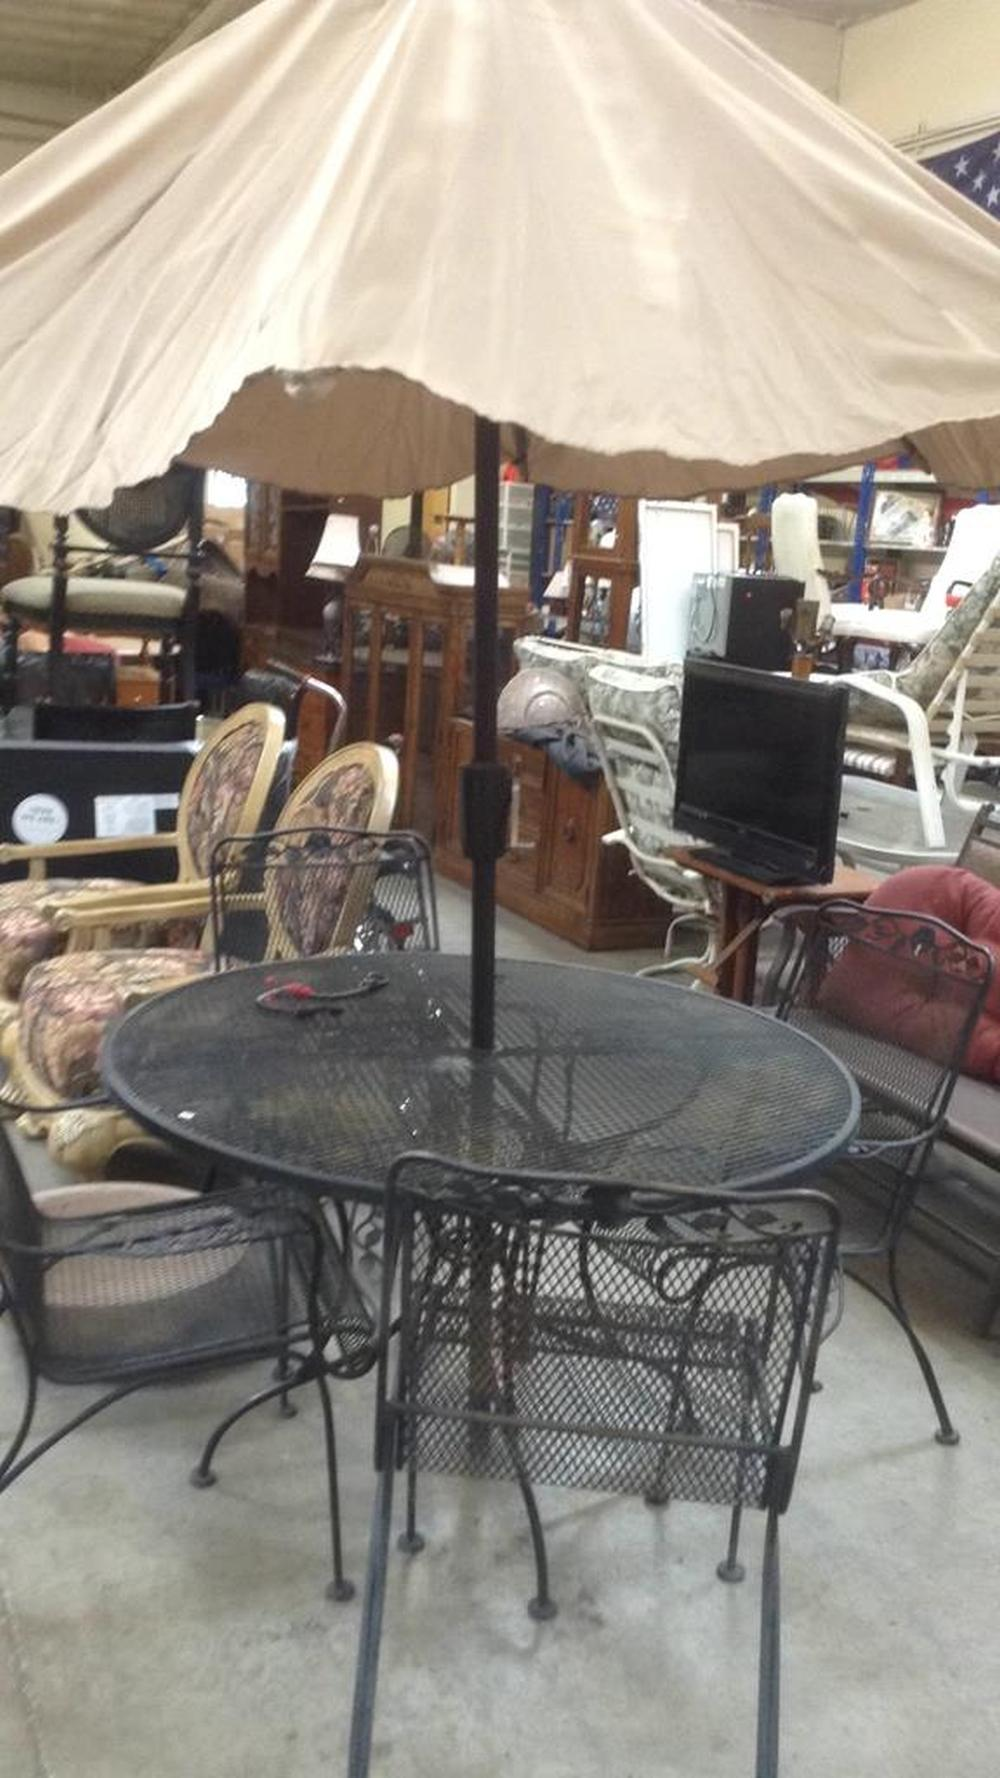 6 piece vintage wrought iron patio table chairs and umbrella